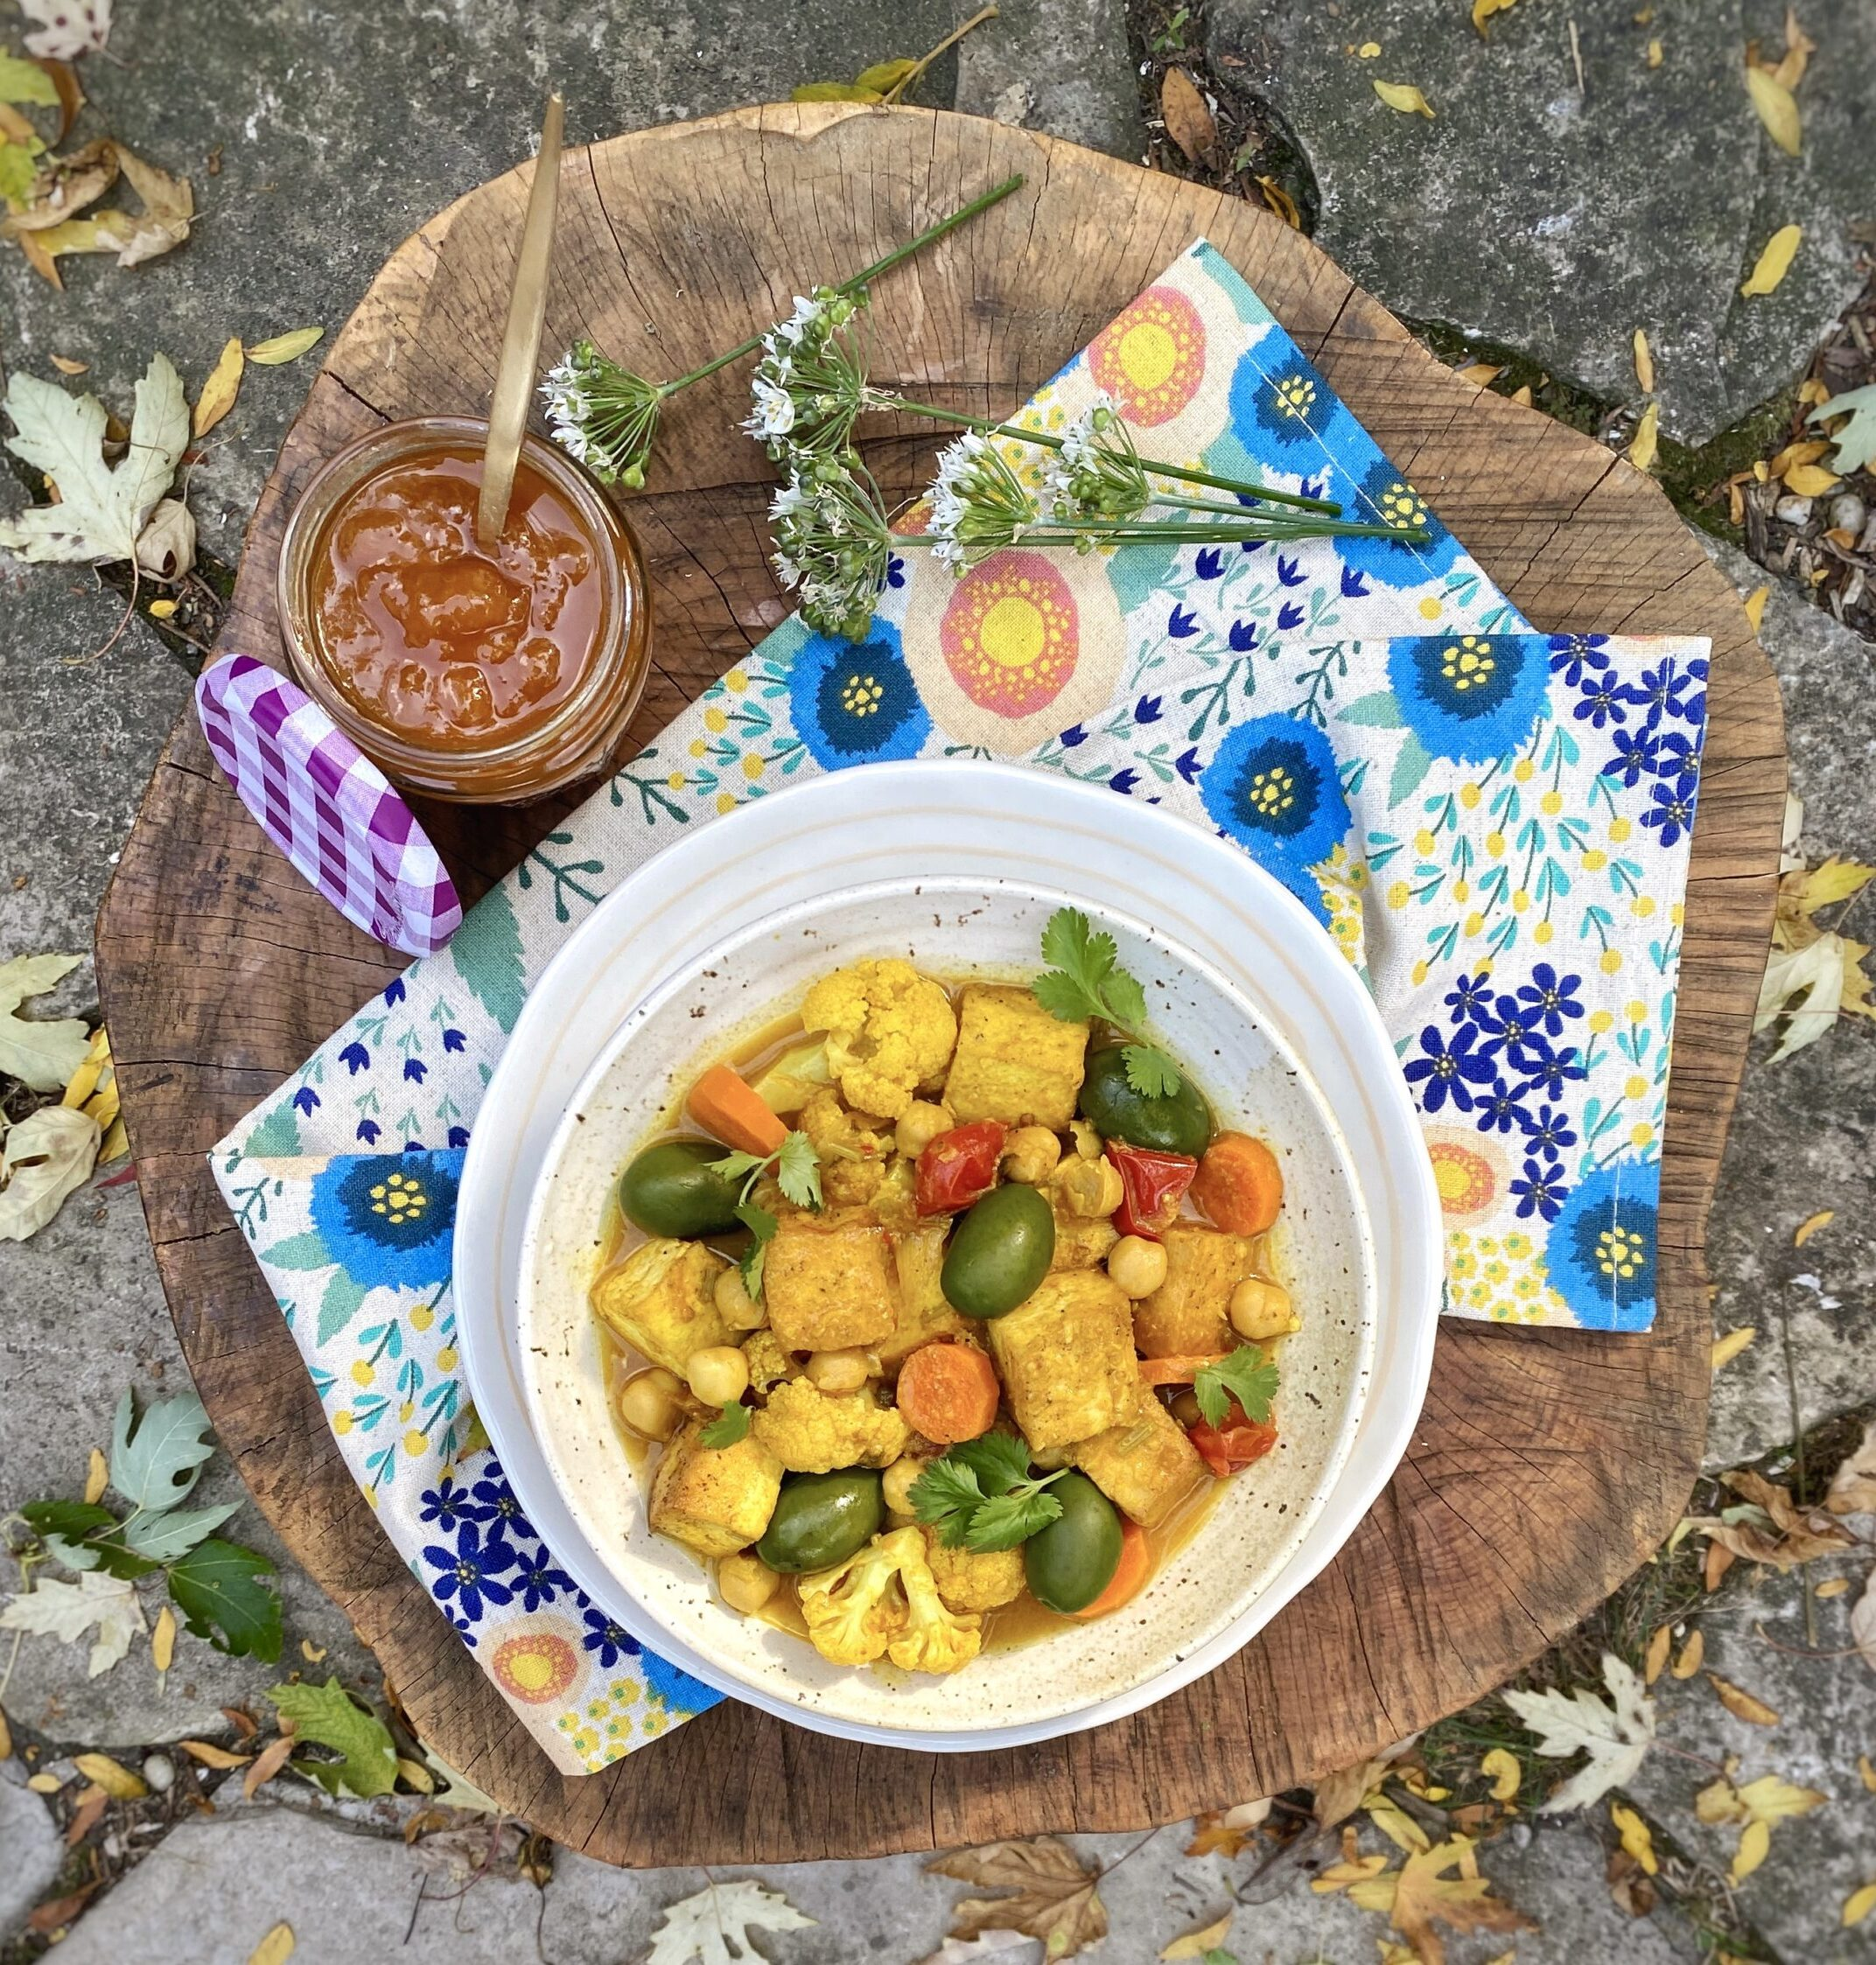 Vegan Spiced Moroccan Tofu tangine made out of hearty vegetables. Photo is outdoors